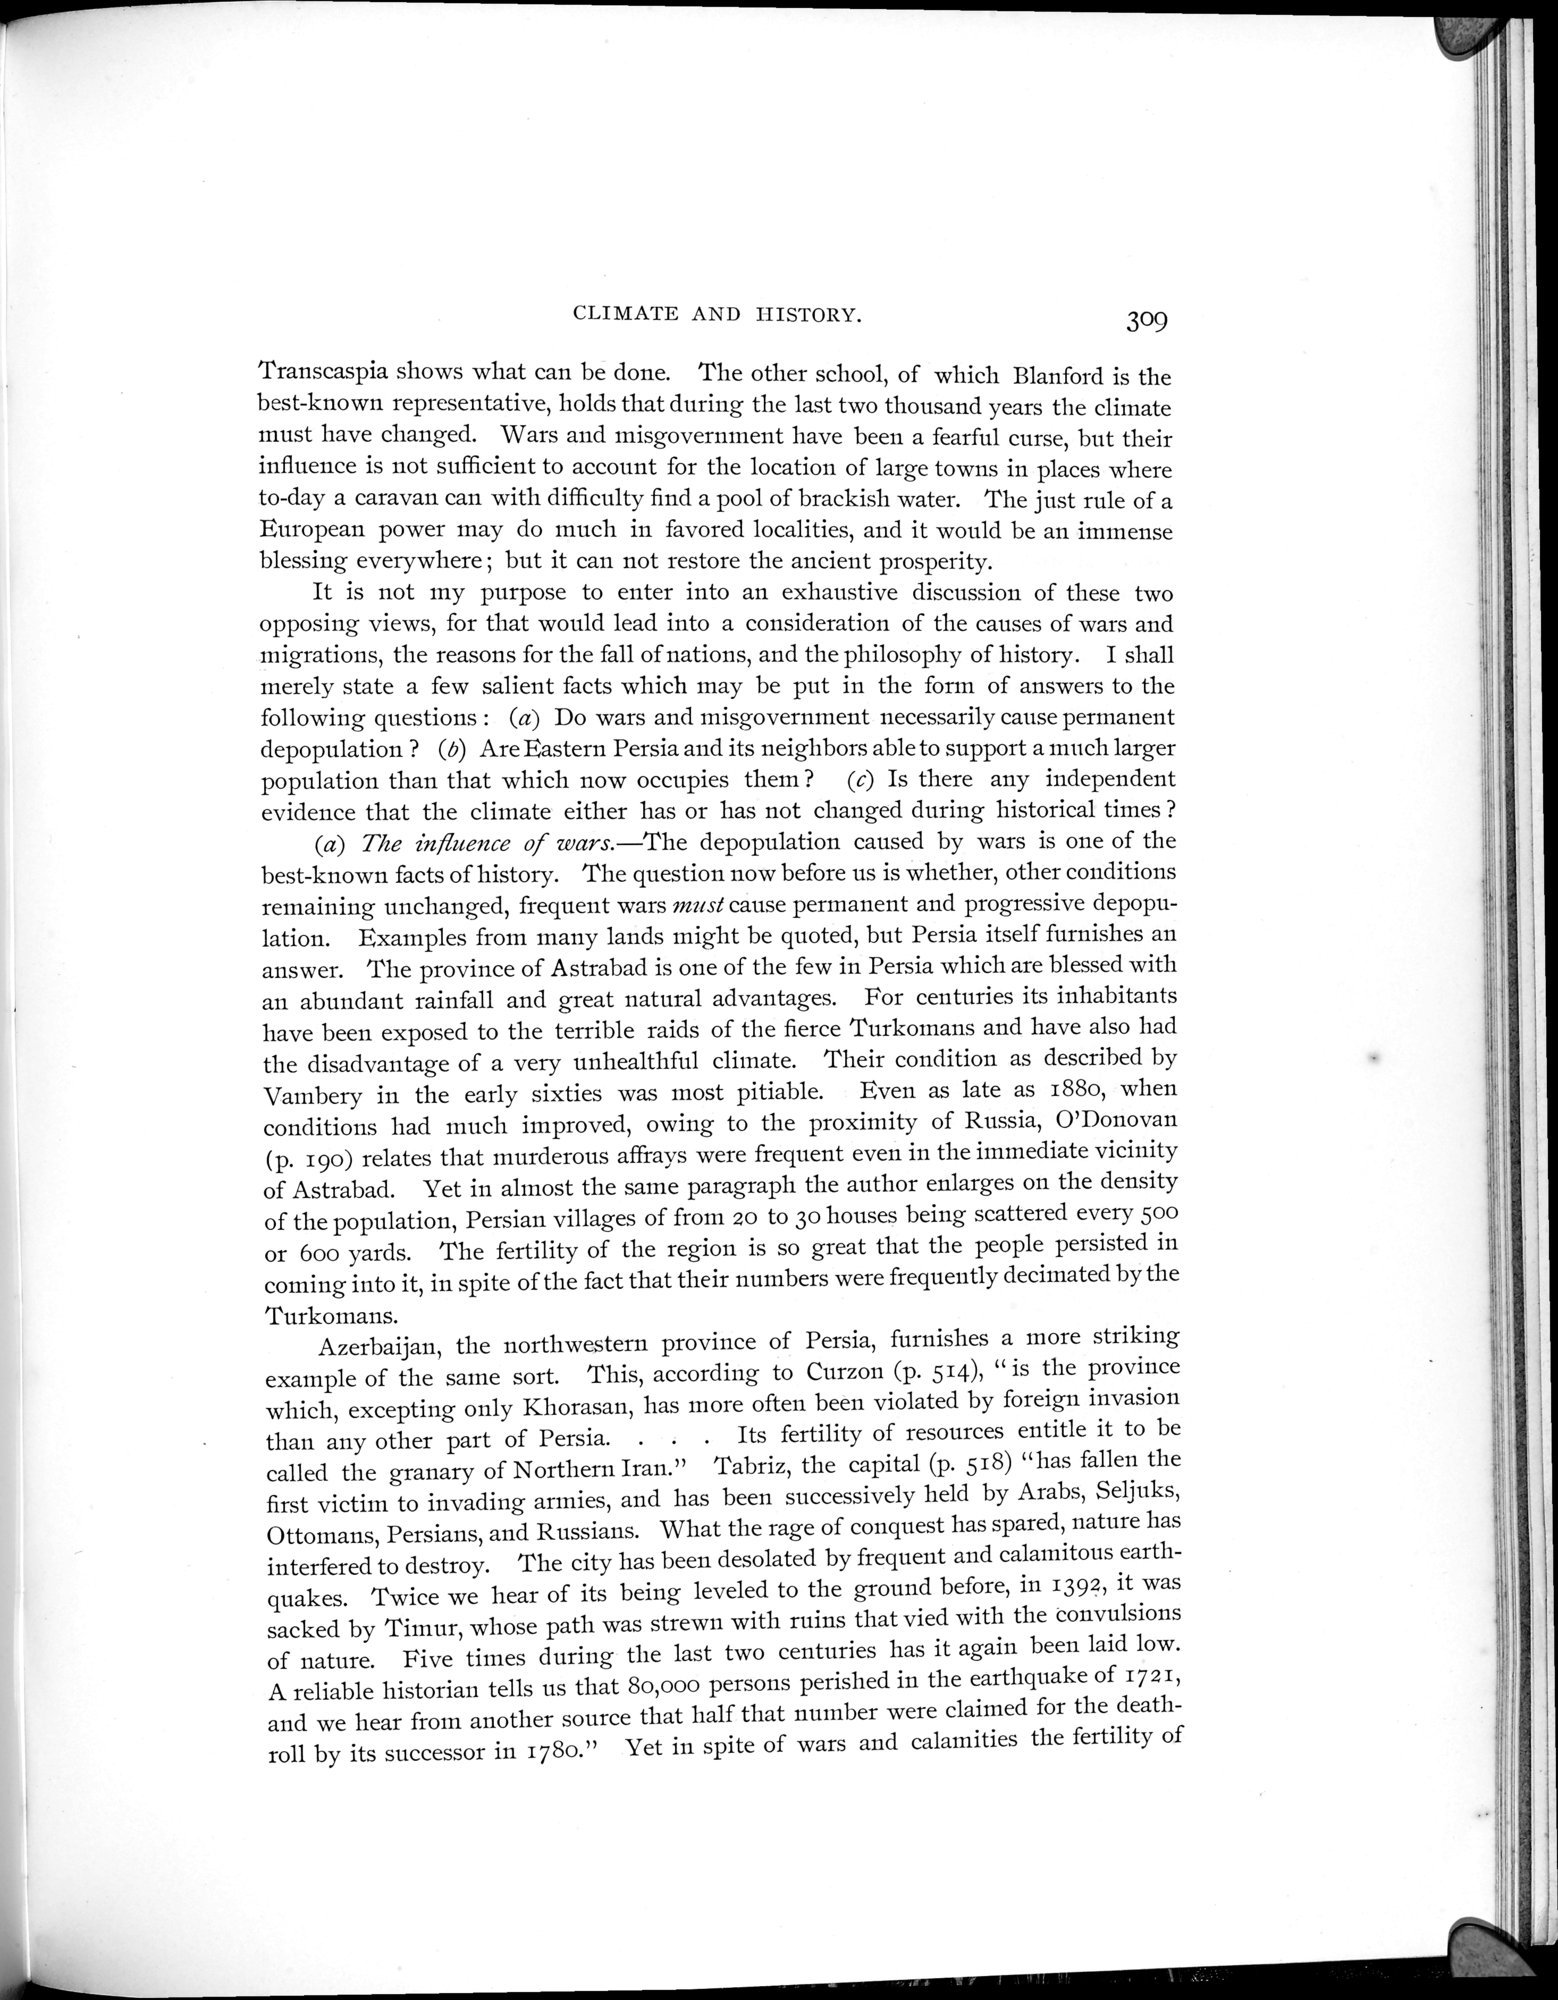 Explorations in Turkestan 1903 : vol.1 / Page 345 (Grayscale High Resolution Image)